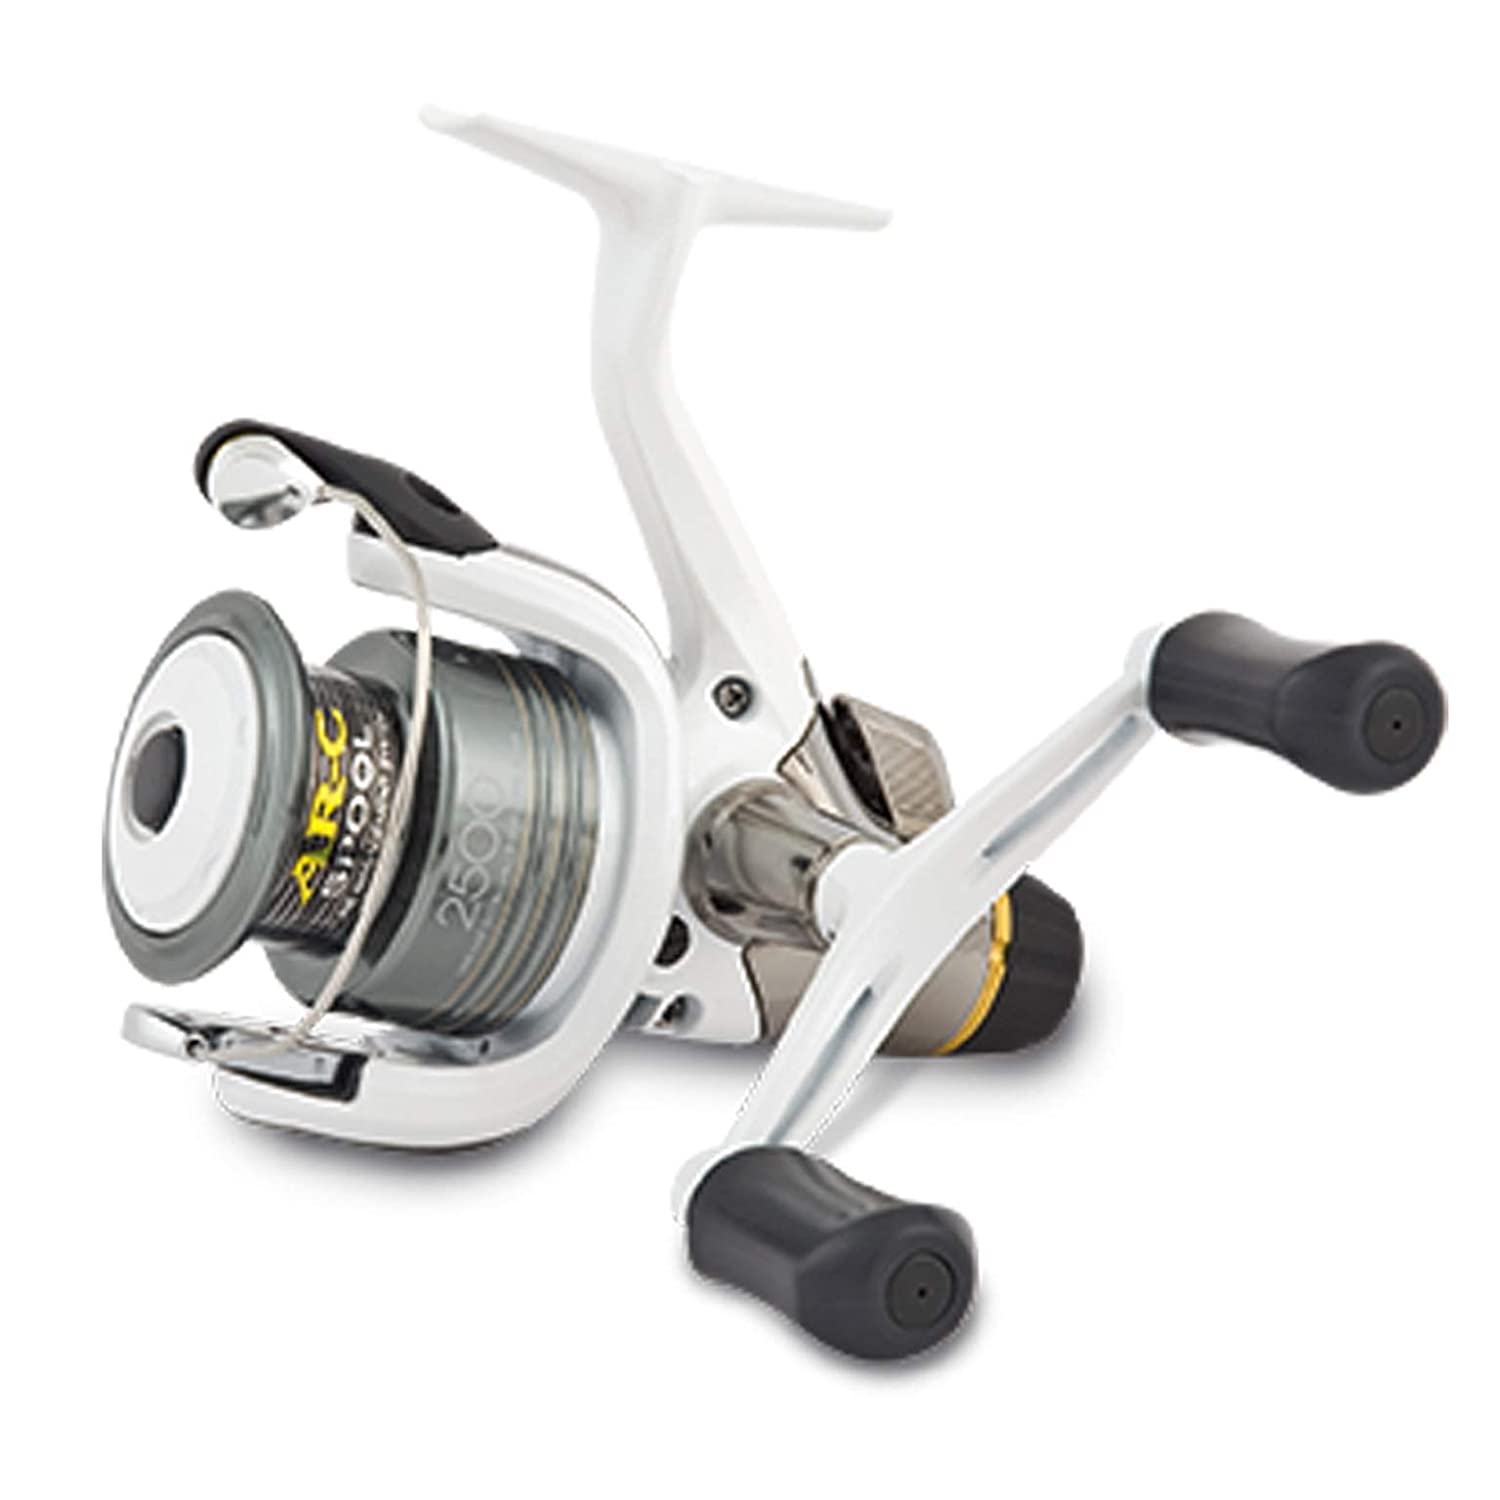 【楽ギフ_のし宛書】 Shimano Stradic GTM RC Spinning Spinning Reel with RC Fightingドラッグ Stradic B002UO3XFS 1500, 贅沢品:f69ba3d2 --- ballyshannonshow.com